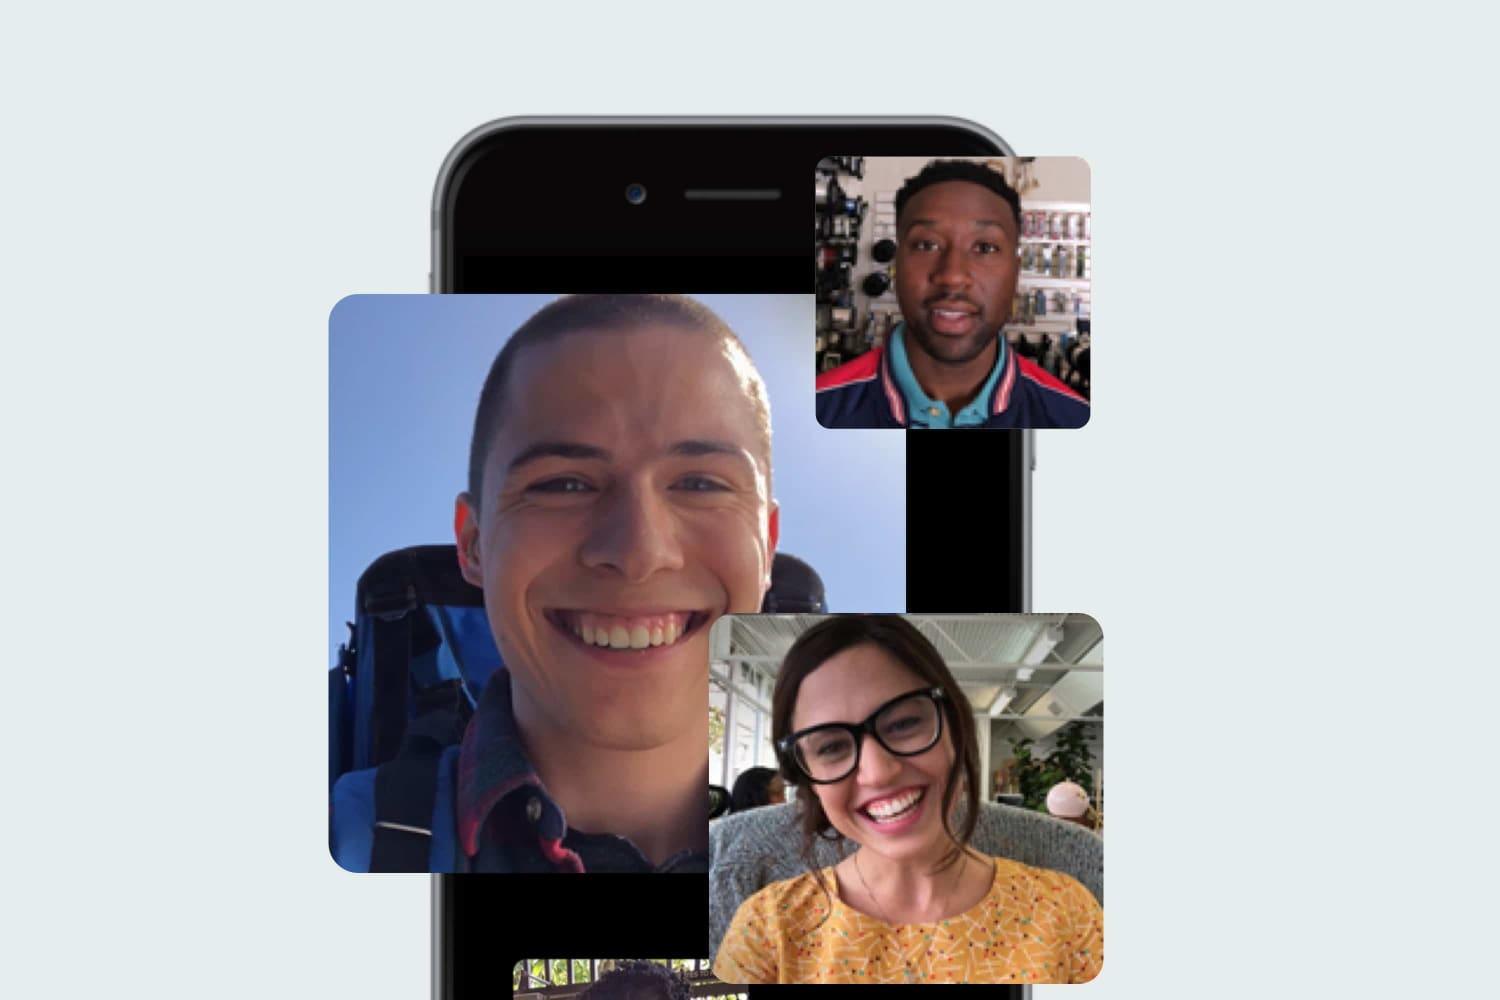 super-quiet-release-of-facetime-hd-1080p-on-iphones-8-and-later-20201203-1